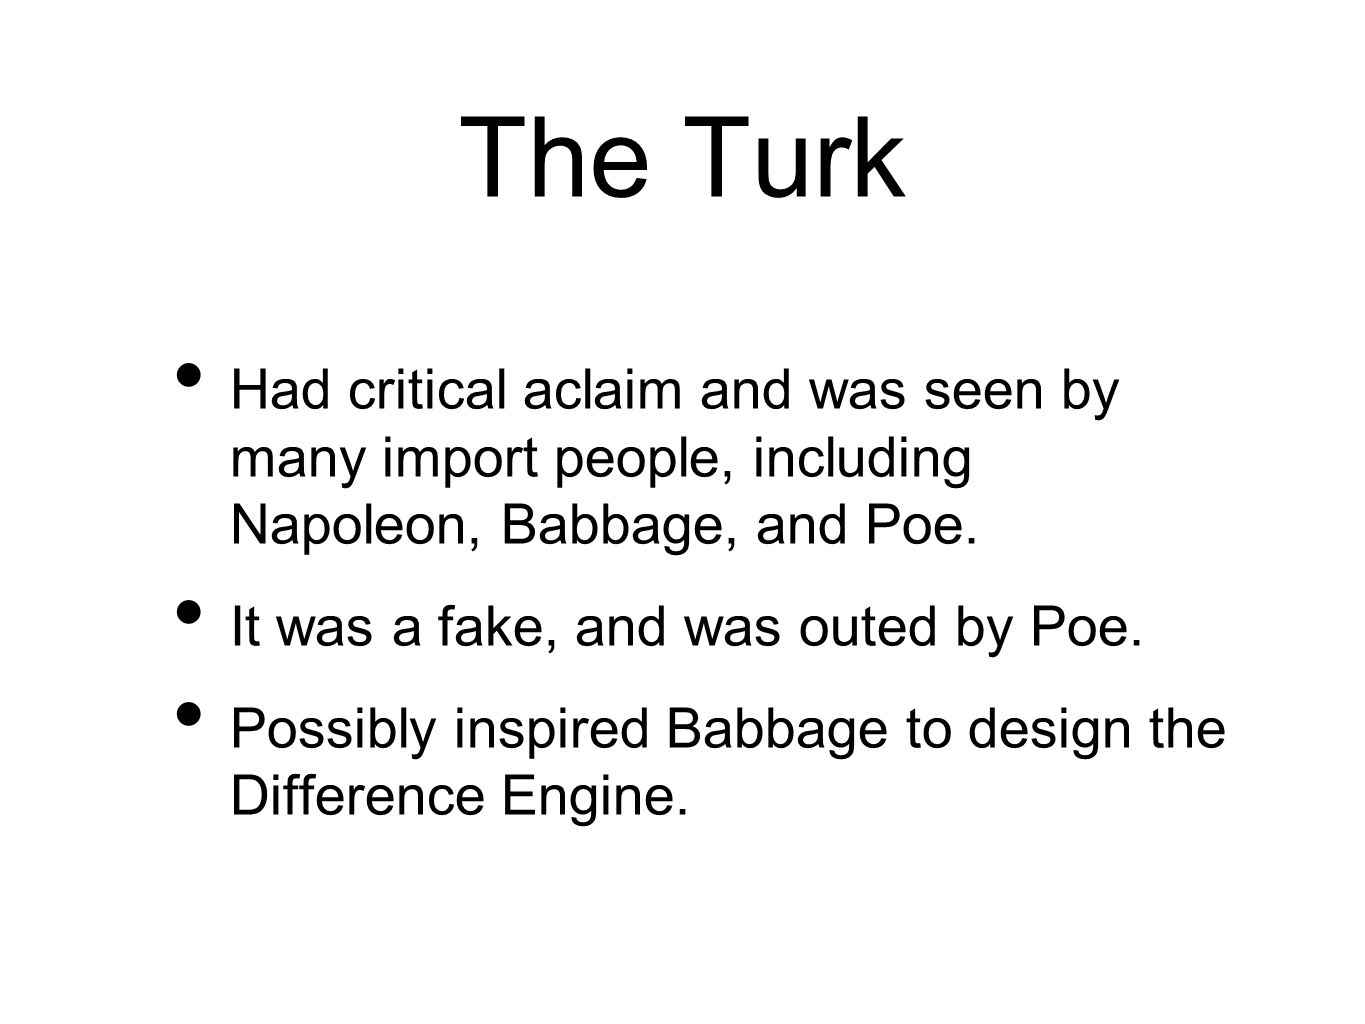 The Turk Had critical aclaim and was seen by many import people, including Napoleon, Babbage, and Poe.